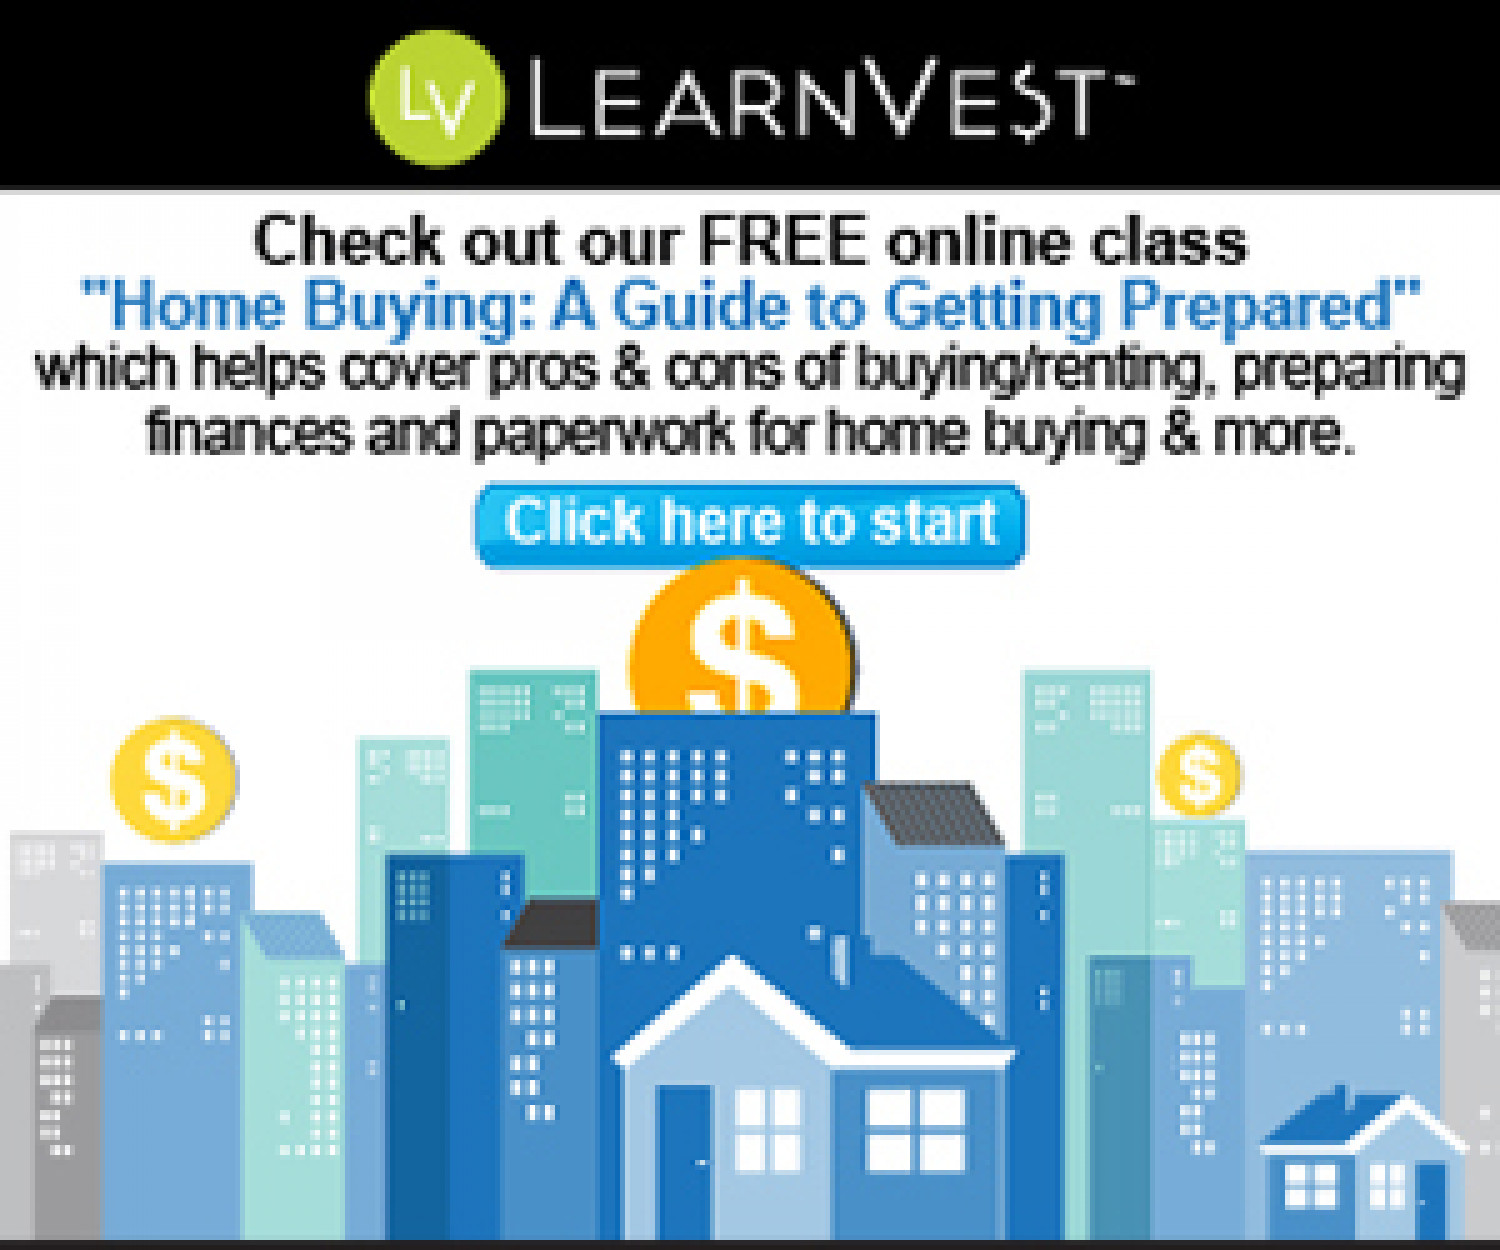 LearnVest Infographic